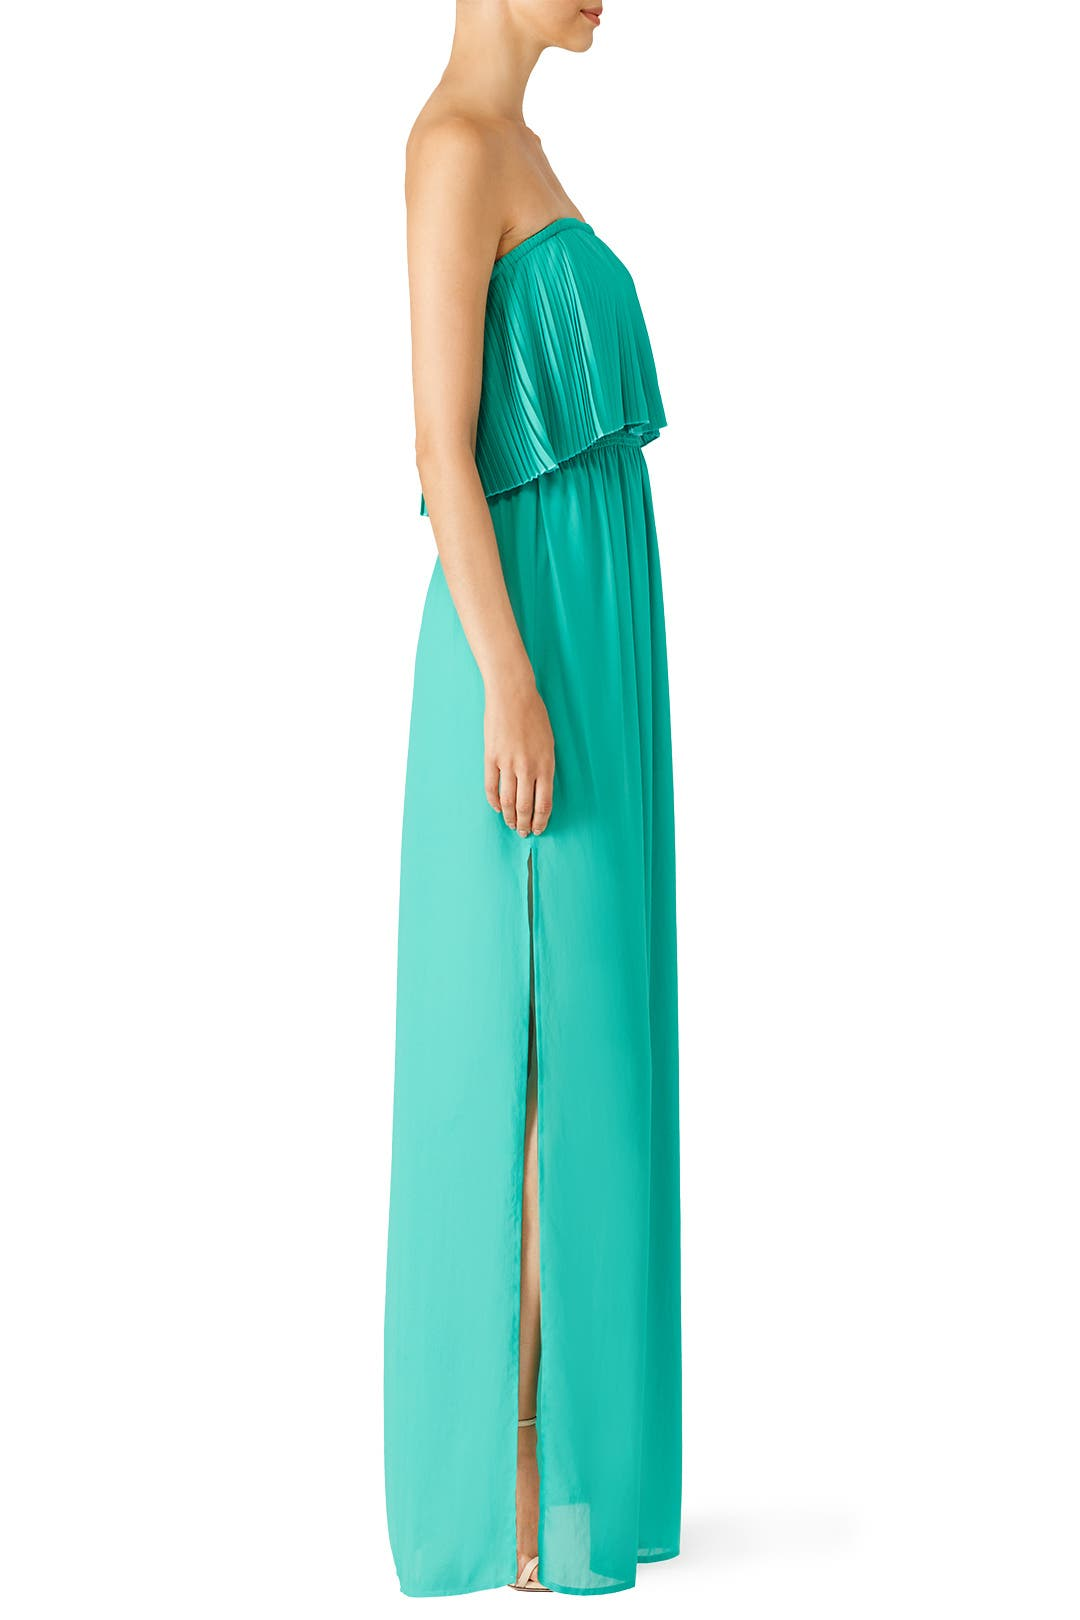 Green Linda Gown by BCBGMAXAZRIA for $64 | Rent the Runway